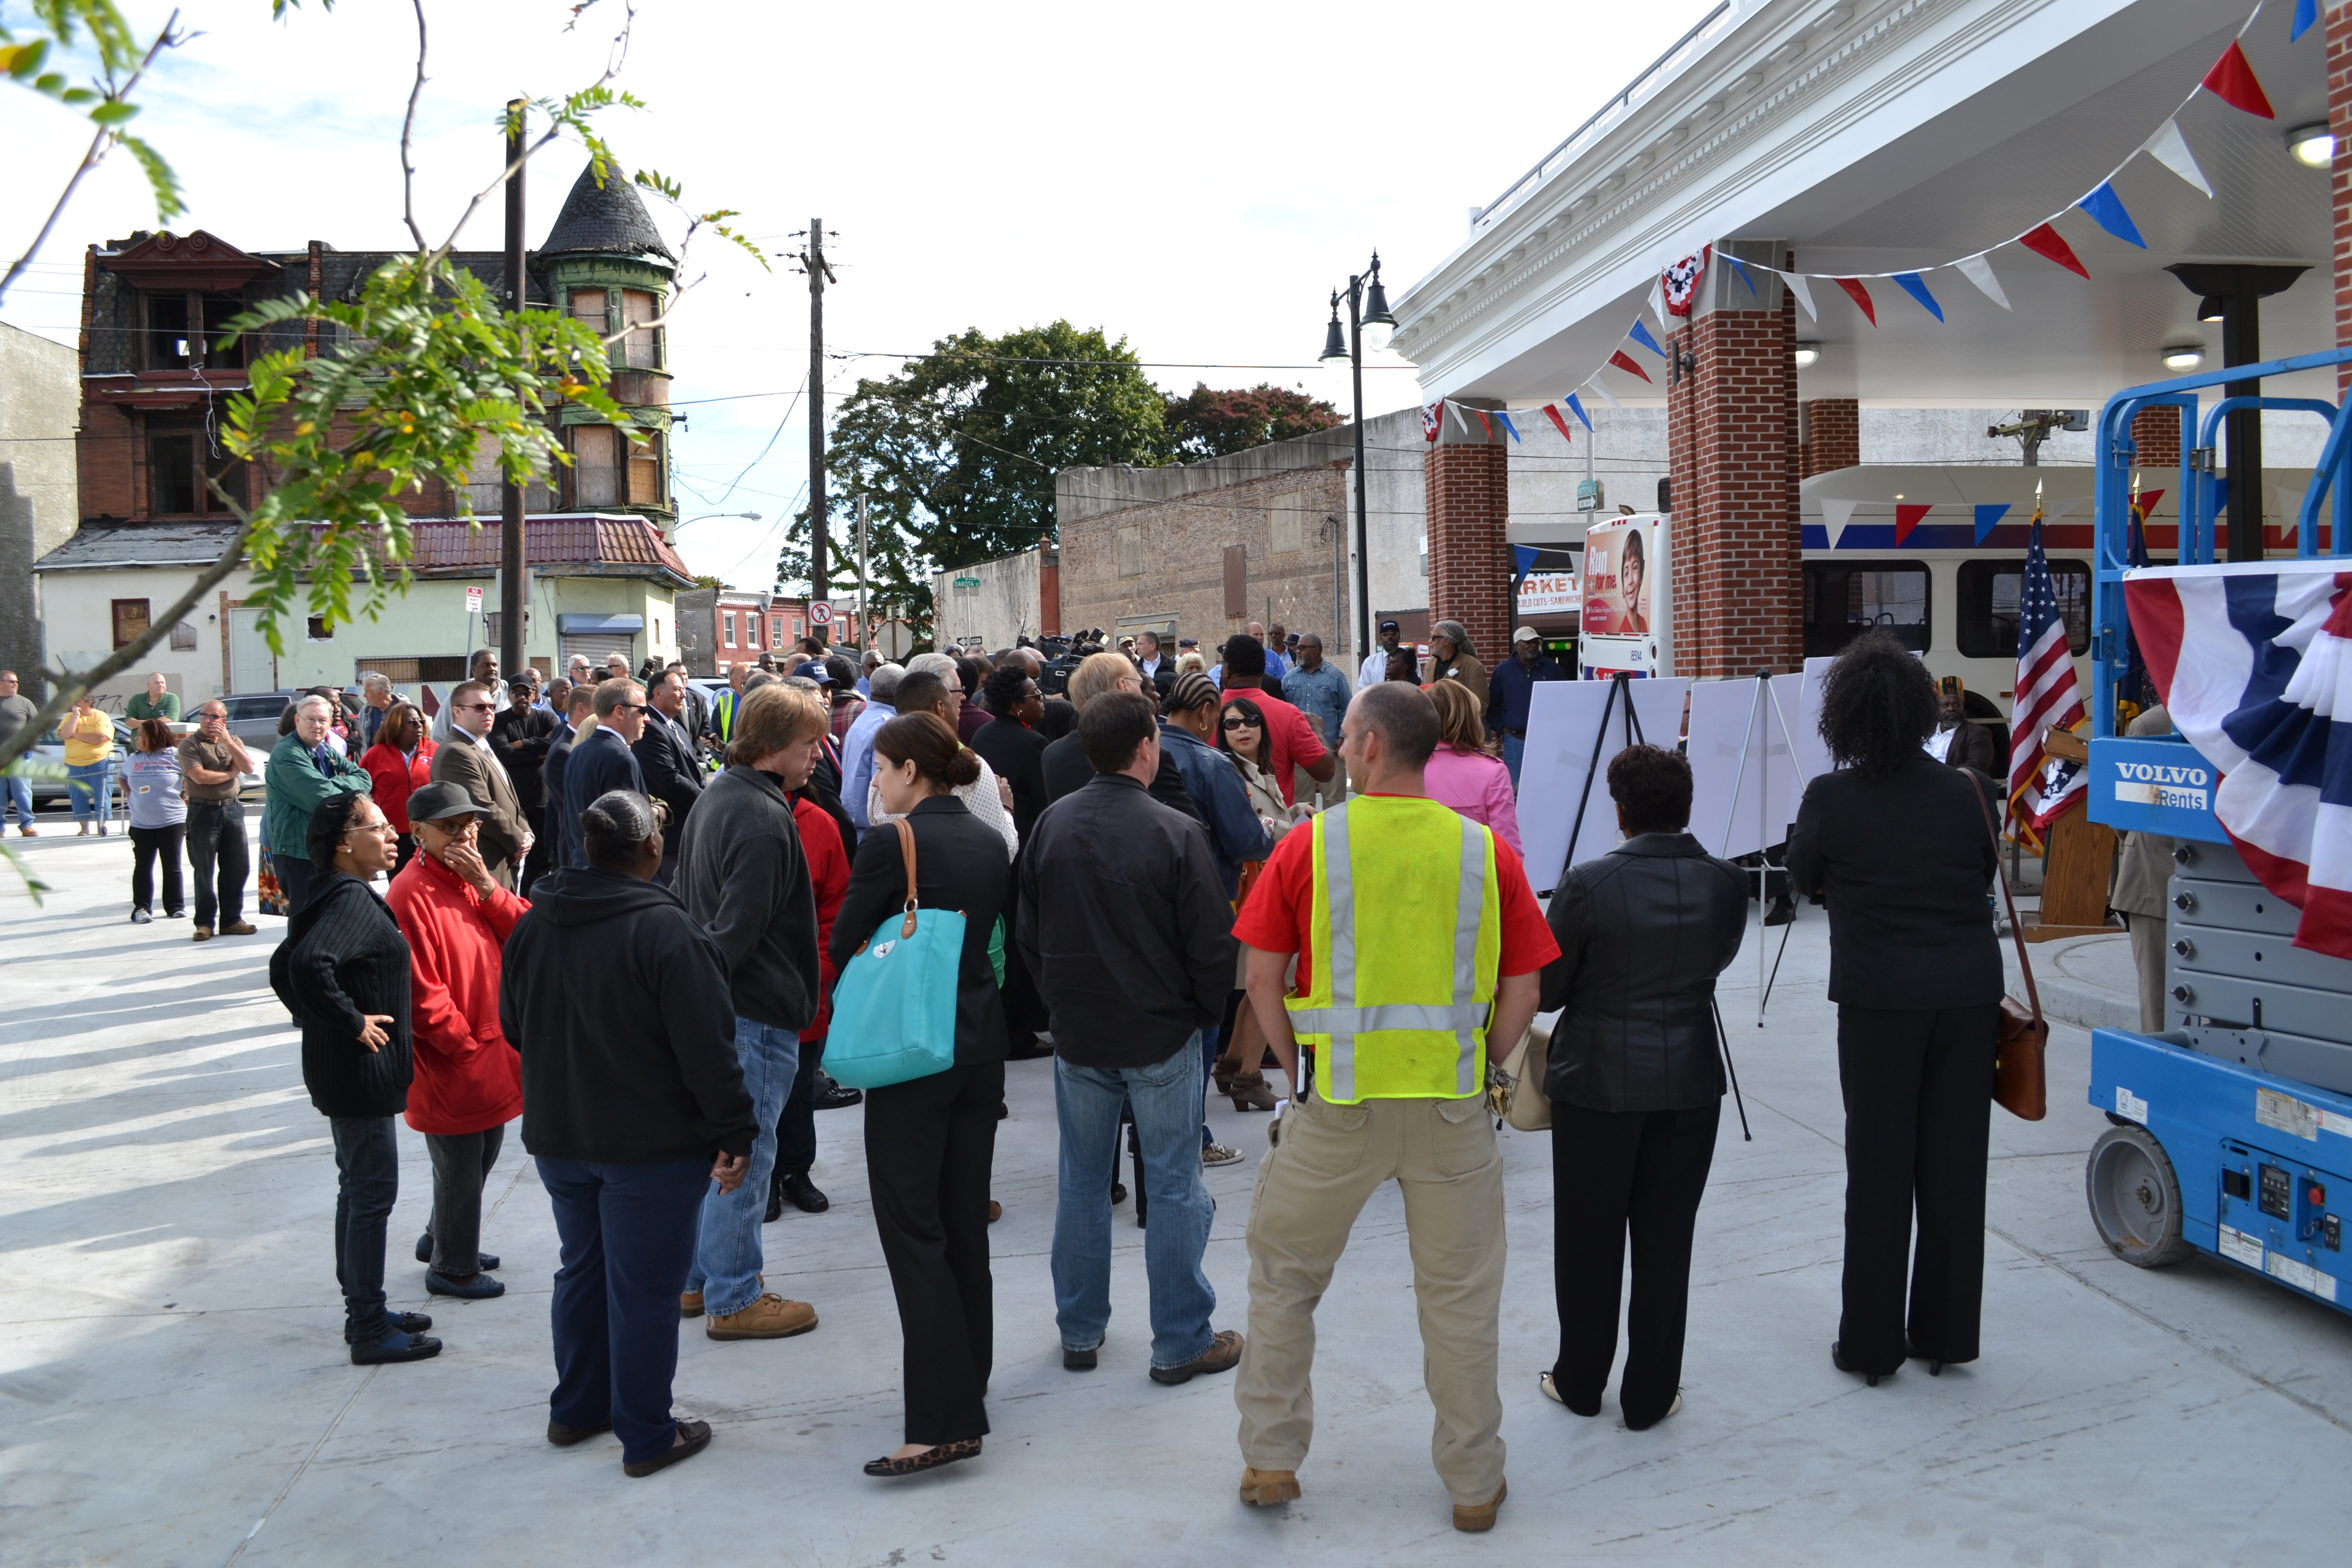 The event drew a large crowd, a mix of community members, SEPTA officials and other project supporters